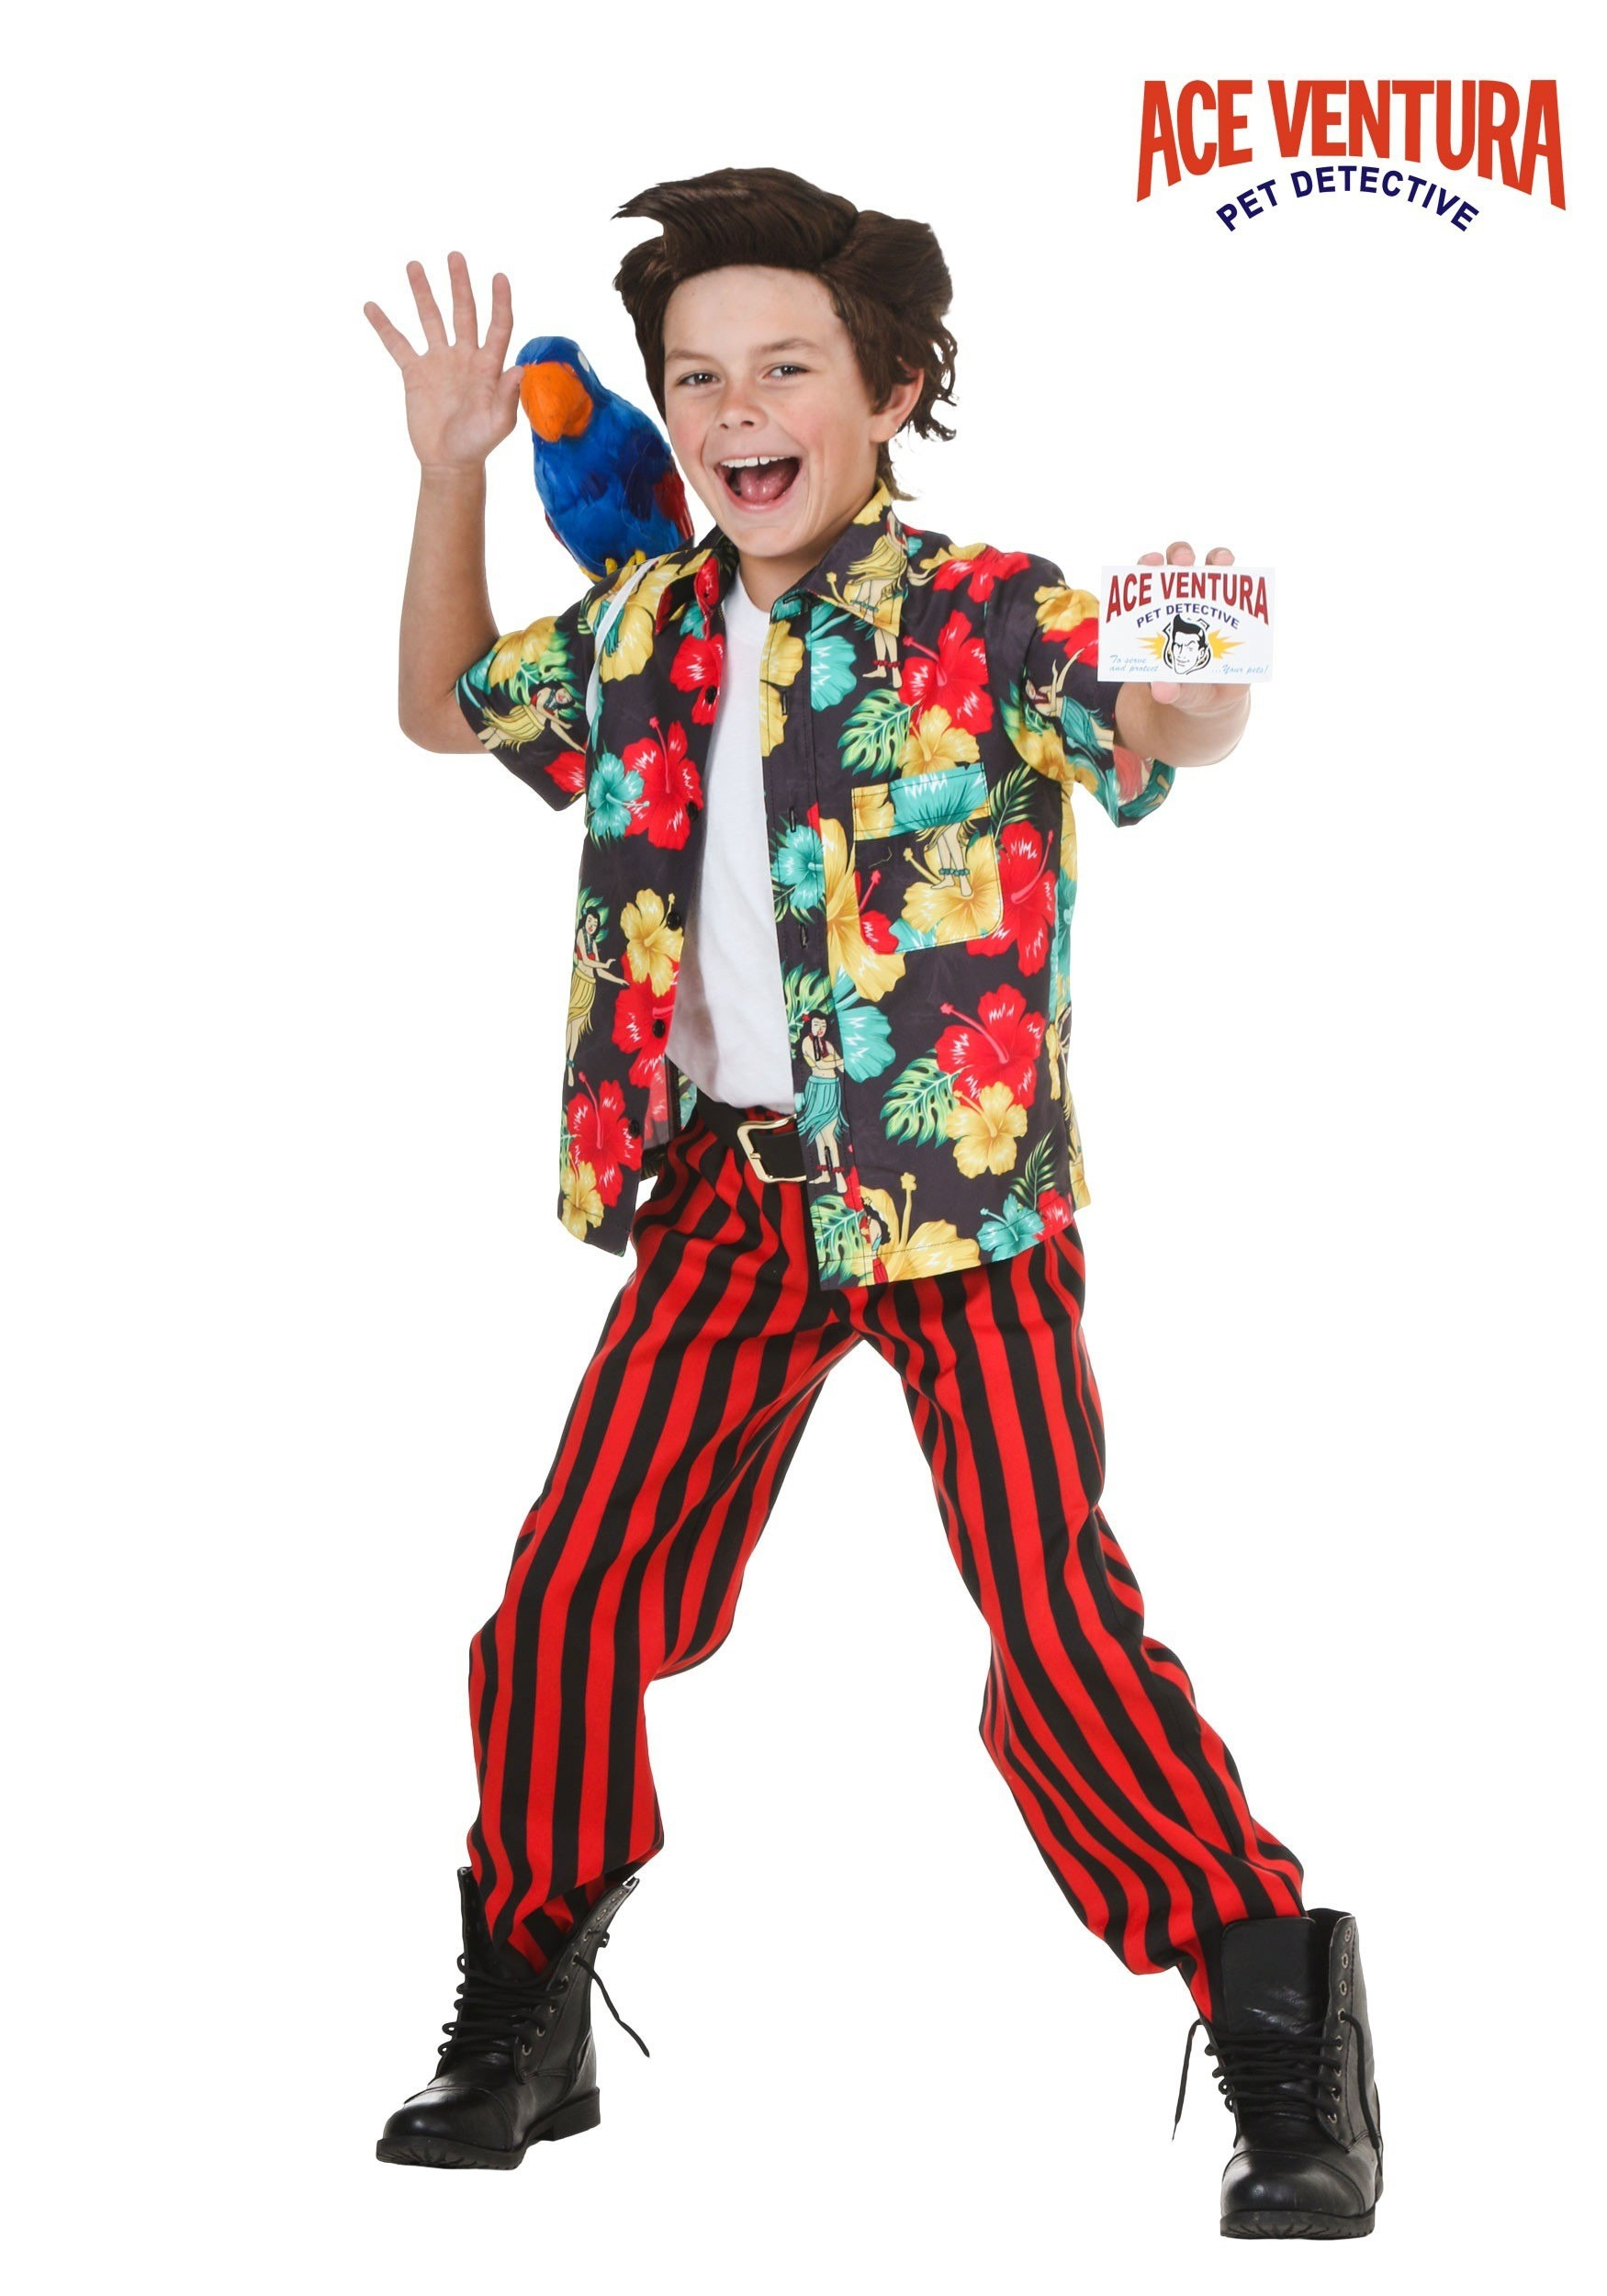 Child Ace Ventura Costume with Wig - Costume